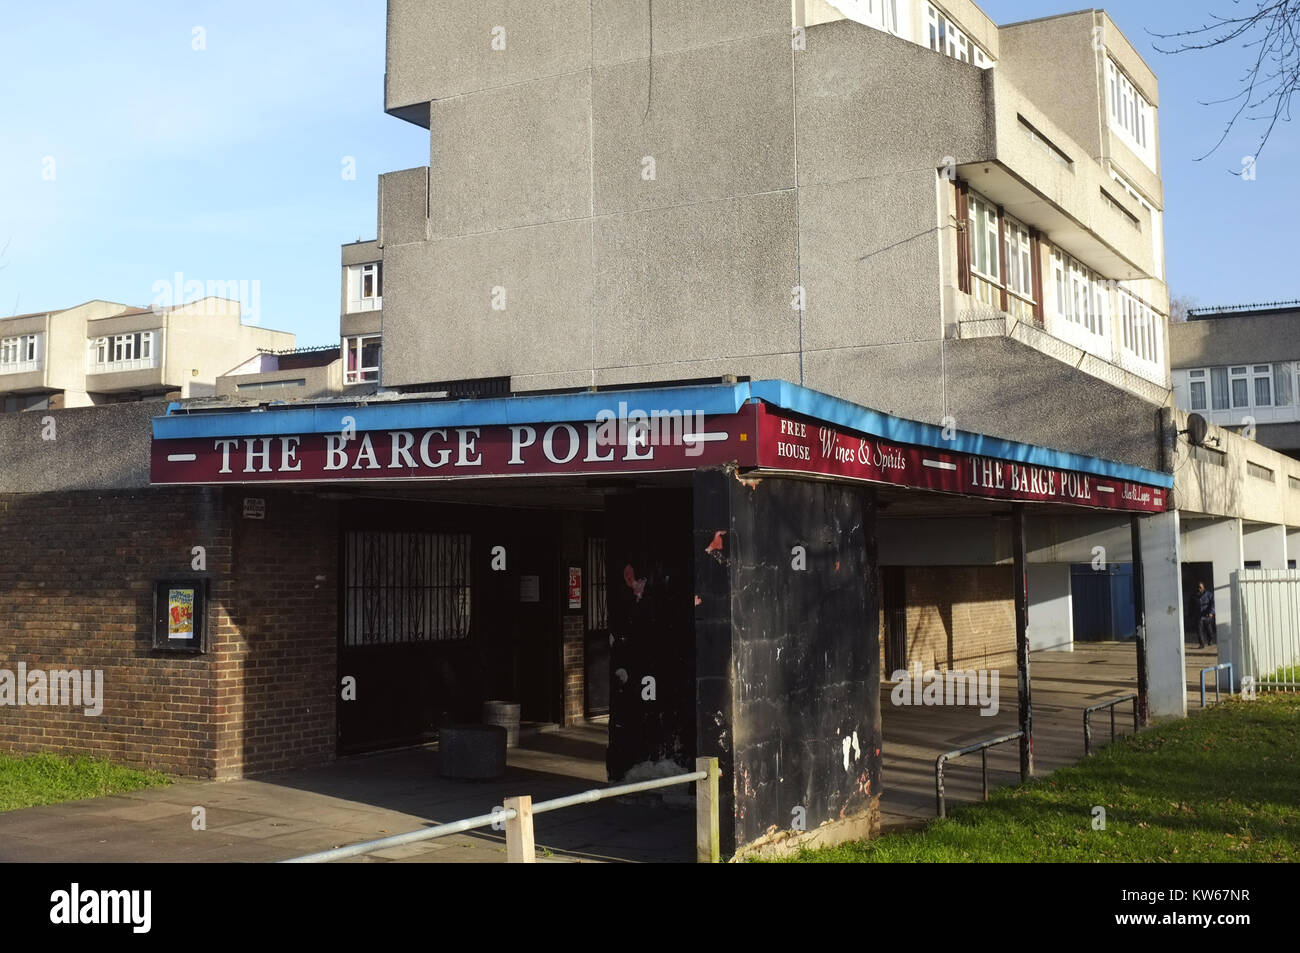 The Barge Pole pub, Post-war housing estate, Thamesmead, near Abbey Wood, south-east London, England, United Kingdom, - Stock Image